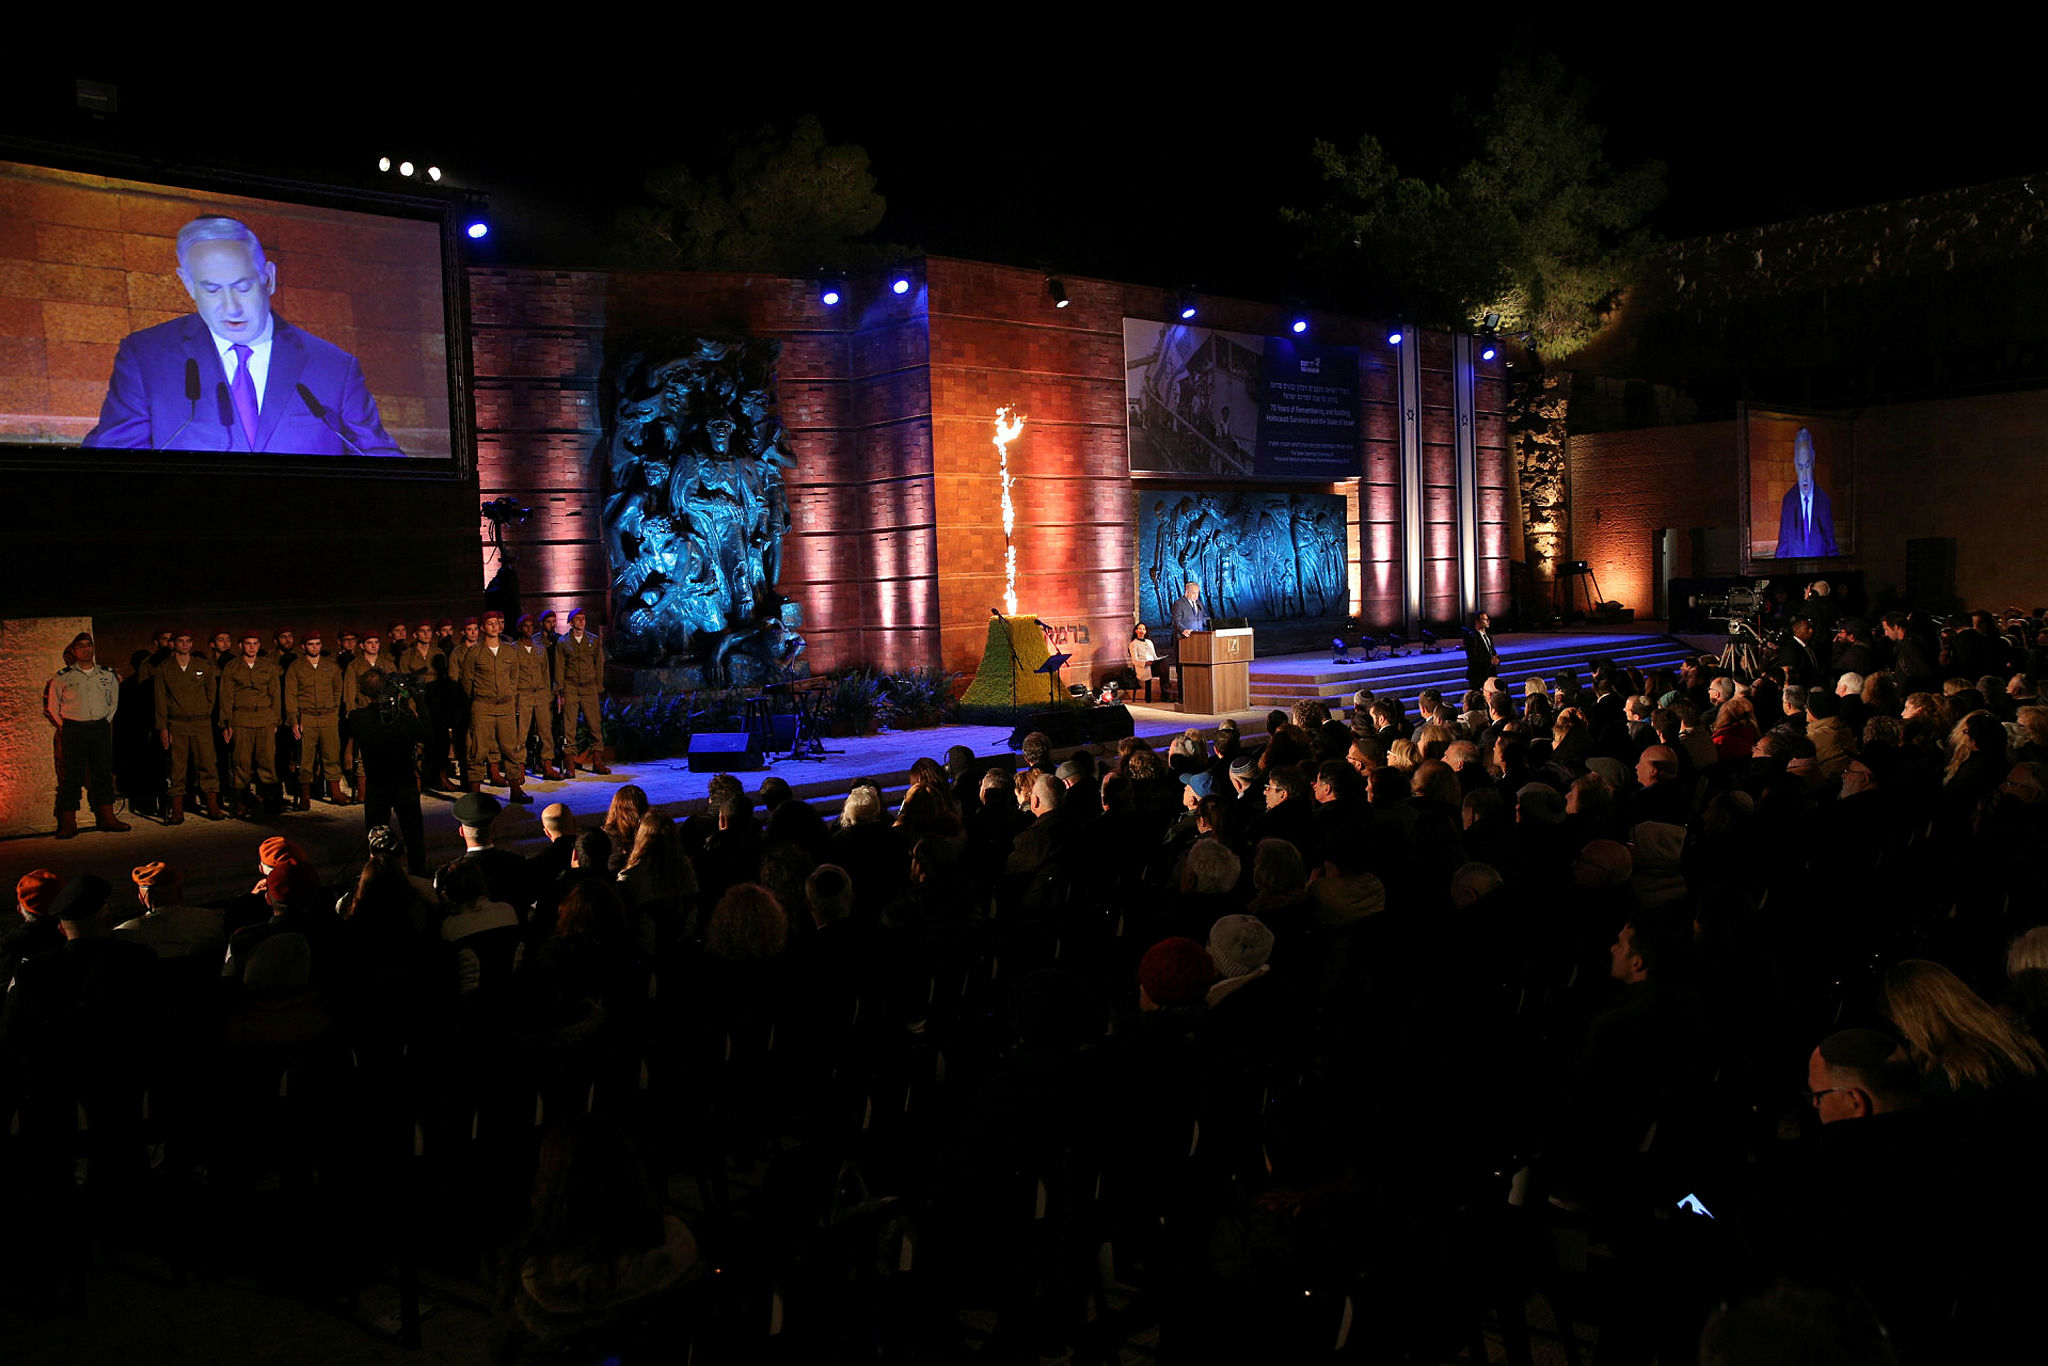 The Holocaust Memorial Day Ceremony in Yad Vashem